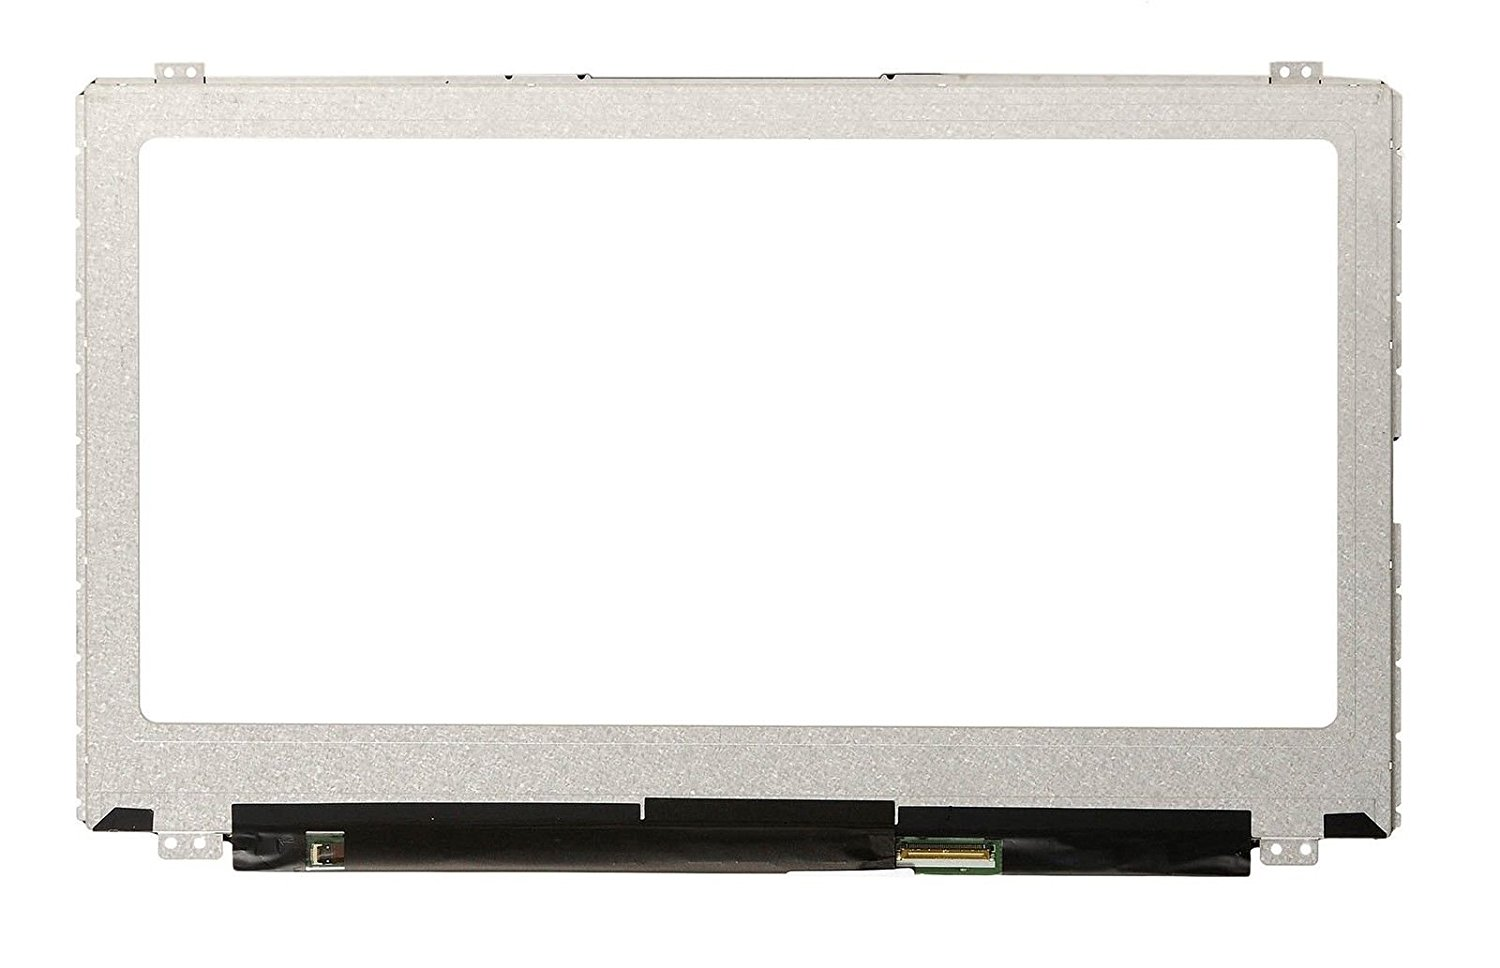 (TOUCH) For DELL Inspiron 3542 1K0XP | Slim 15.6 New LED Screen B156XTT01.1 ноутбук dell inspiron 3542 3542 7807